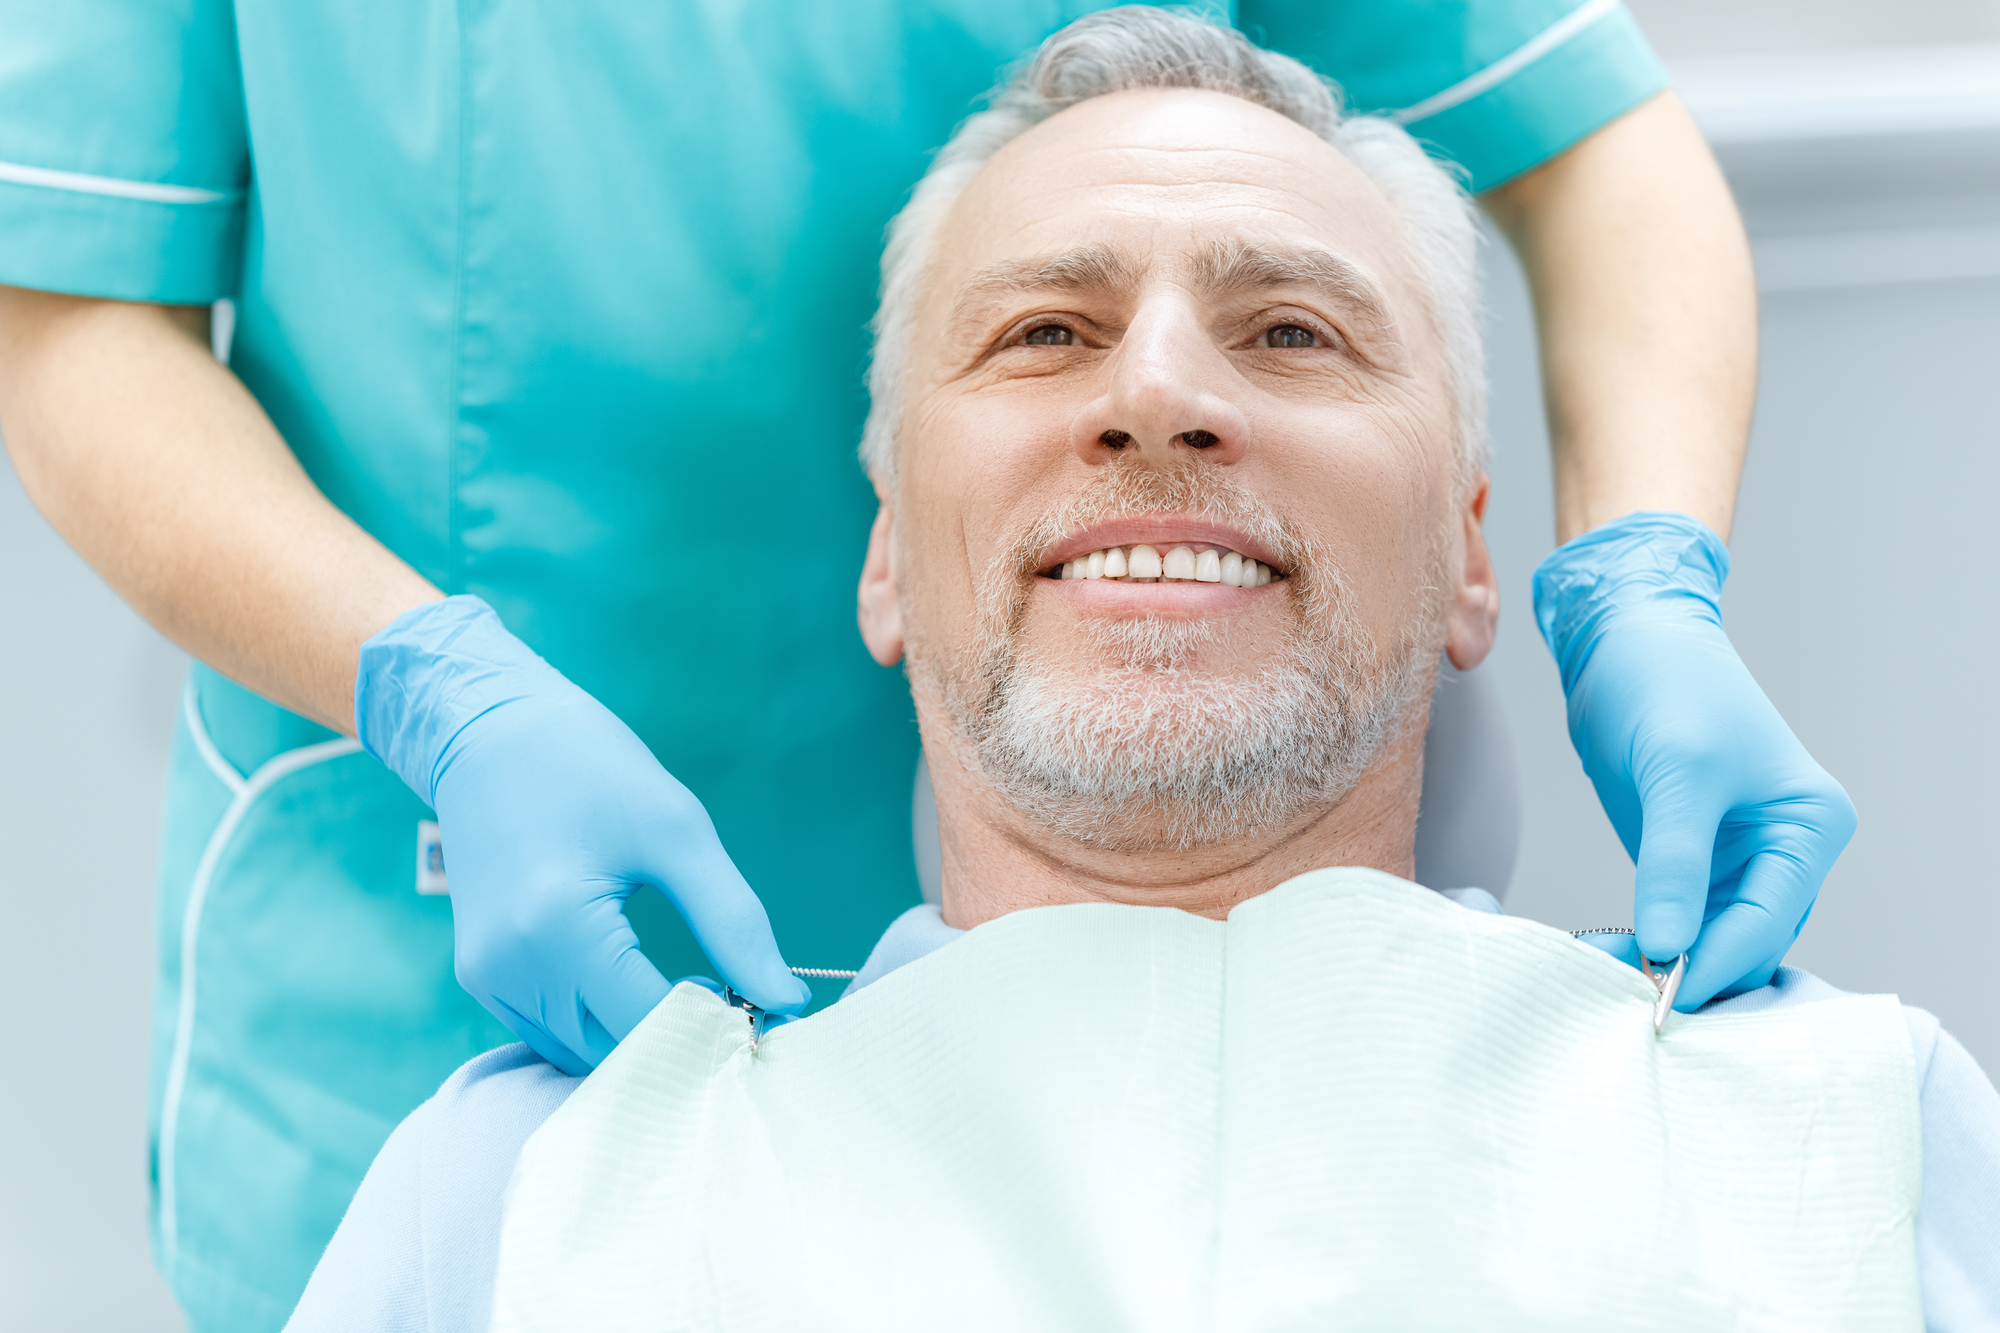 who is the best oral surgeon in coral springs